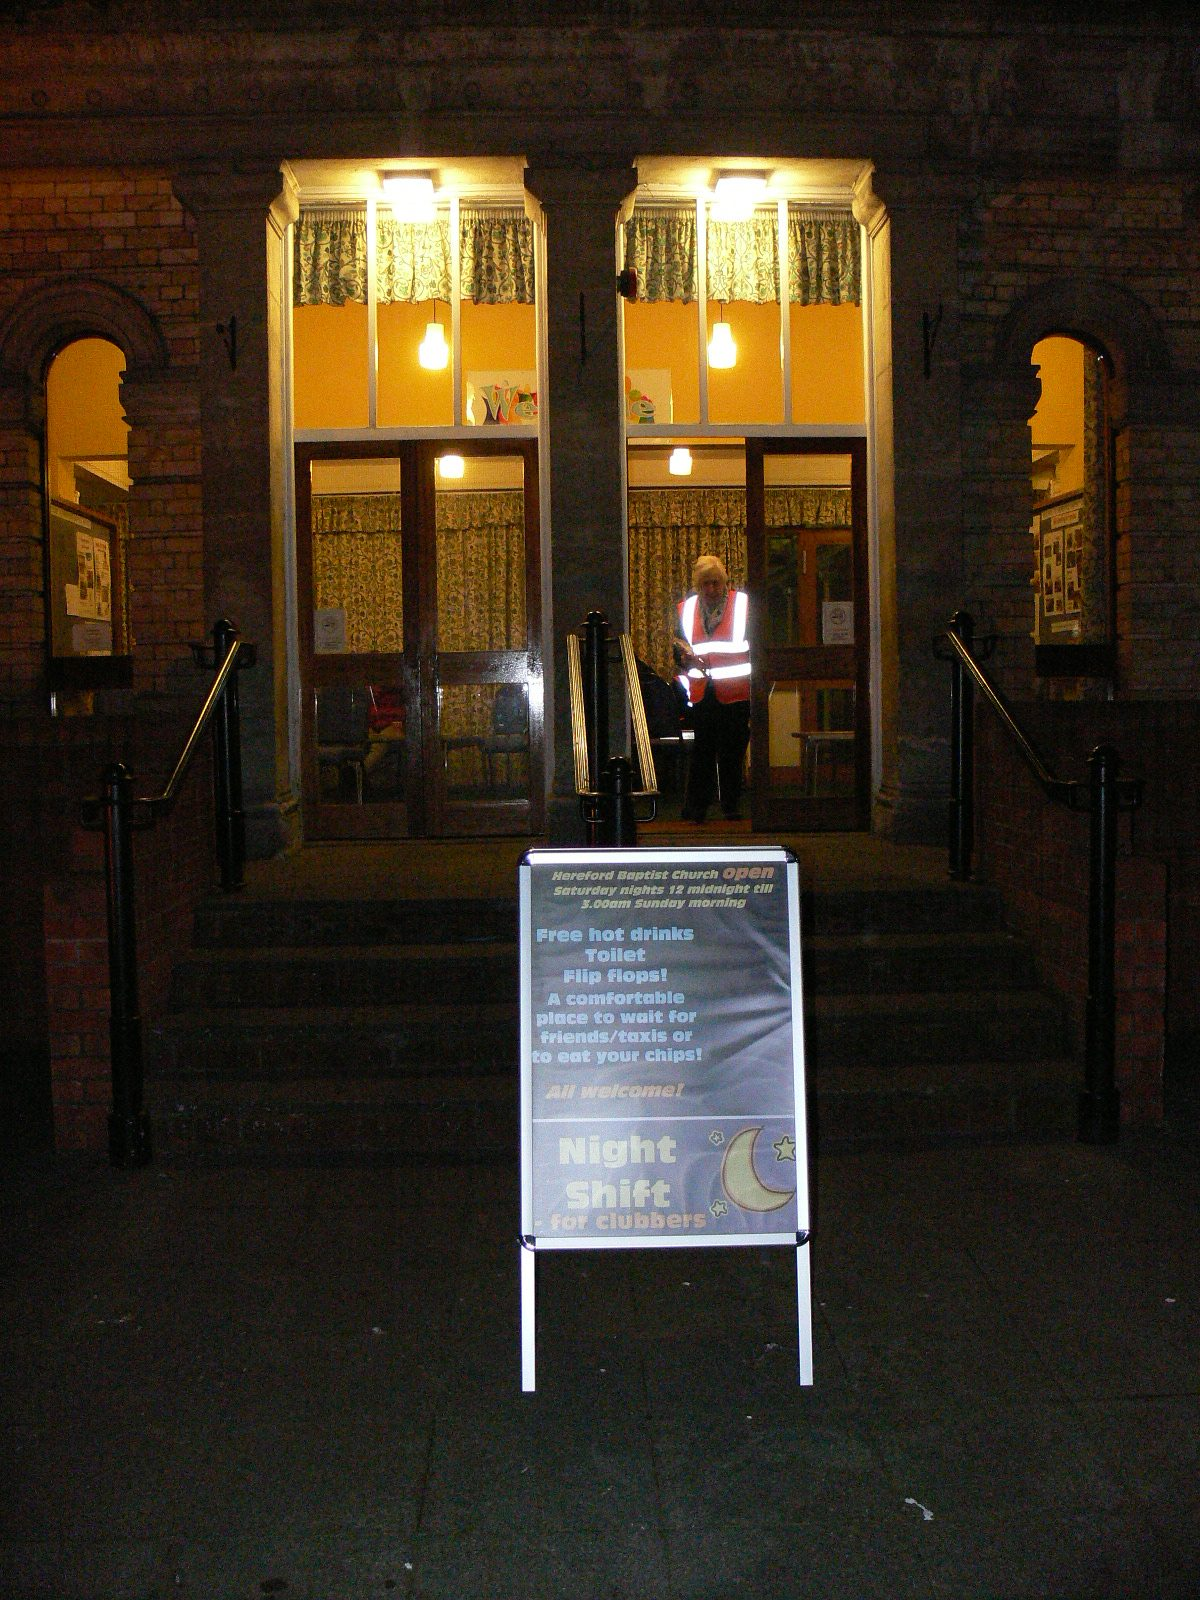 Serving The City Hereford Baptist Church